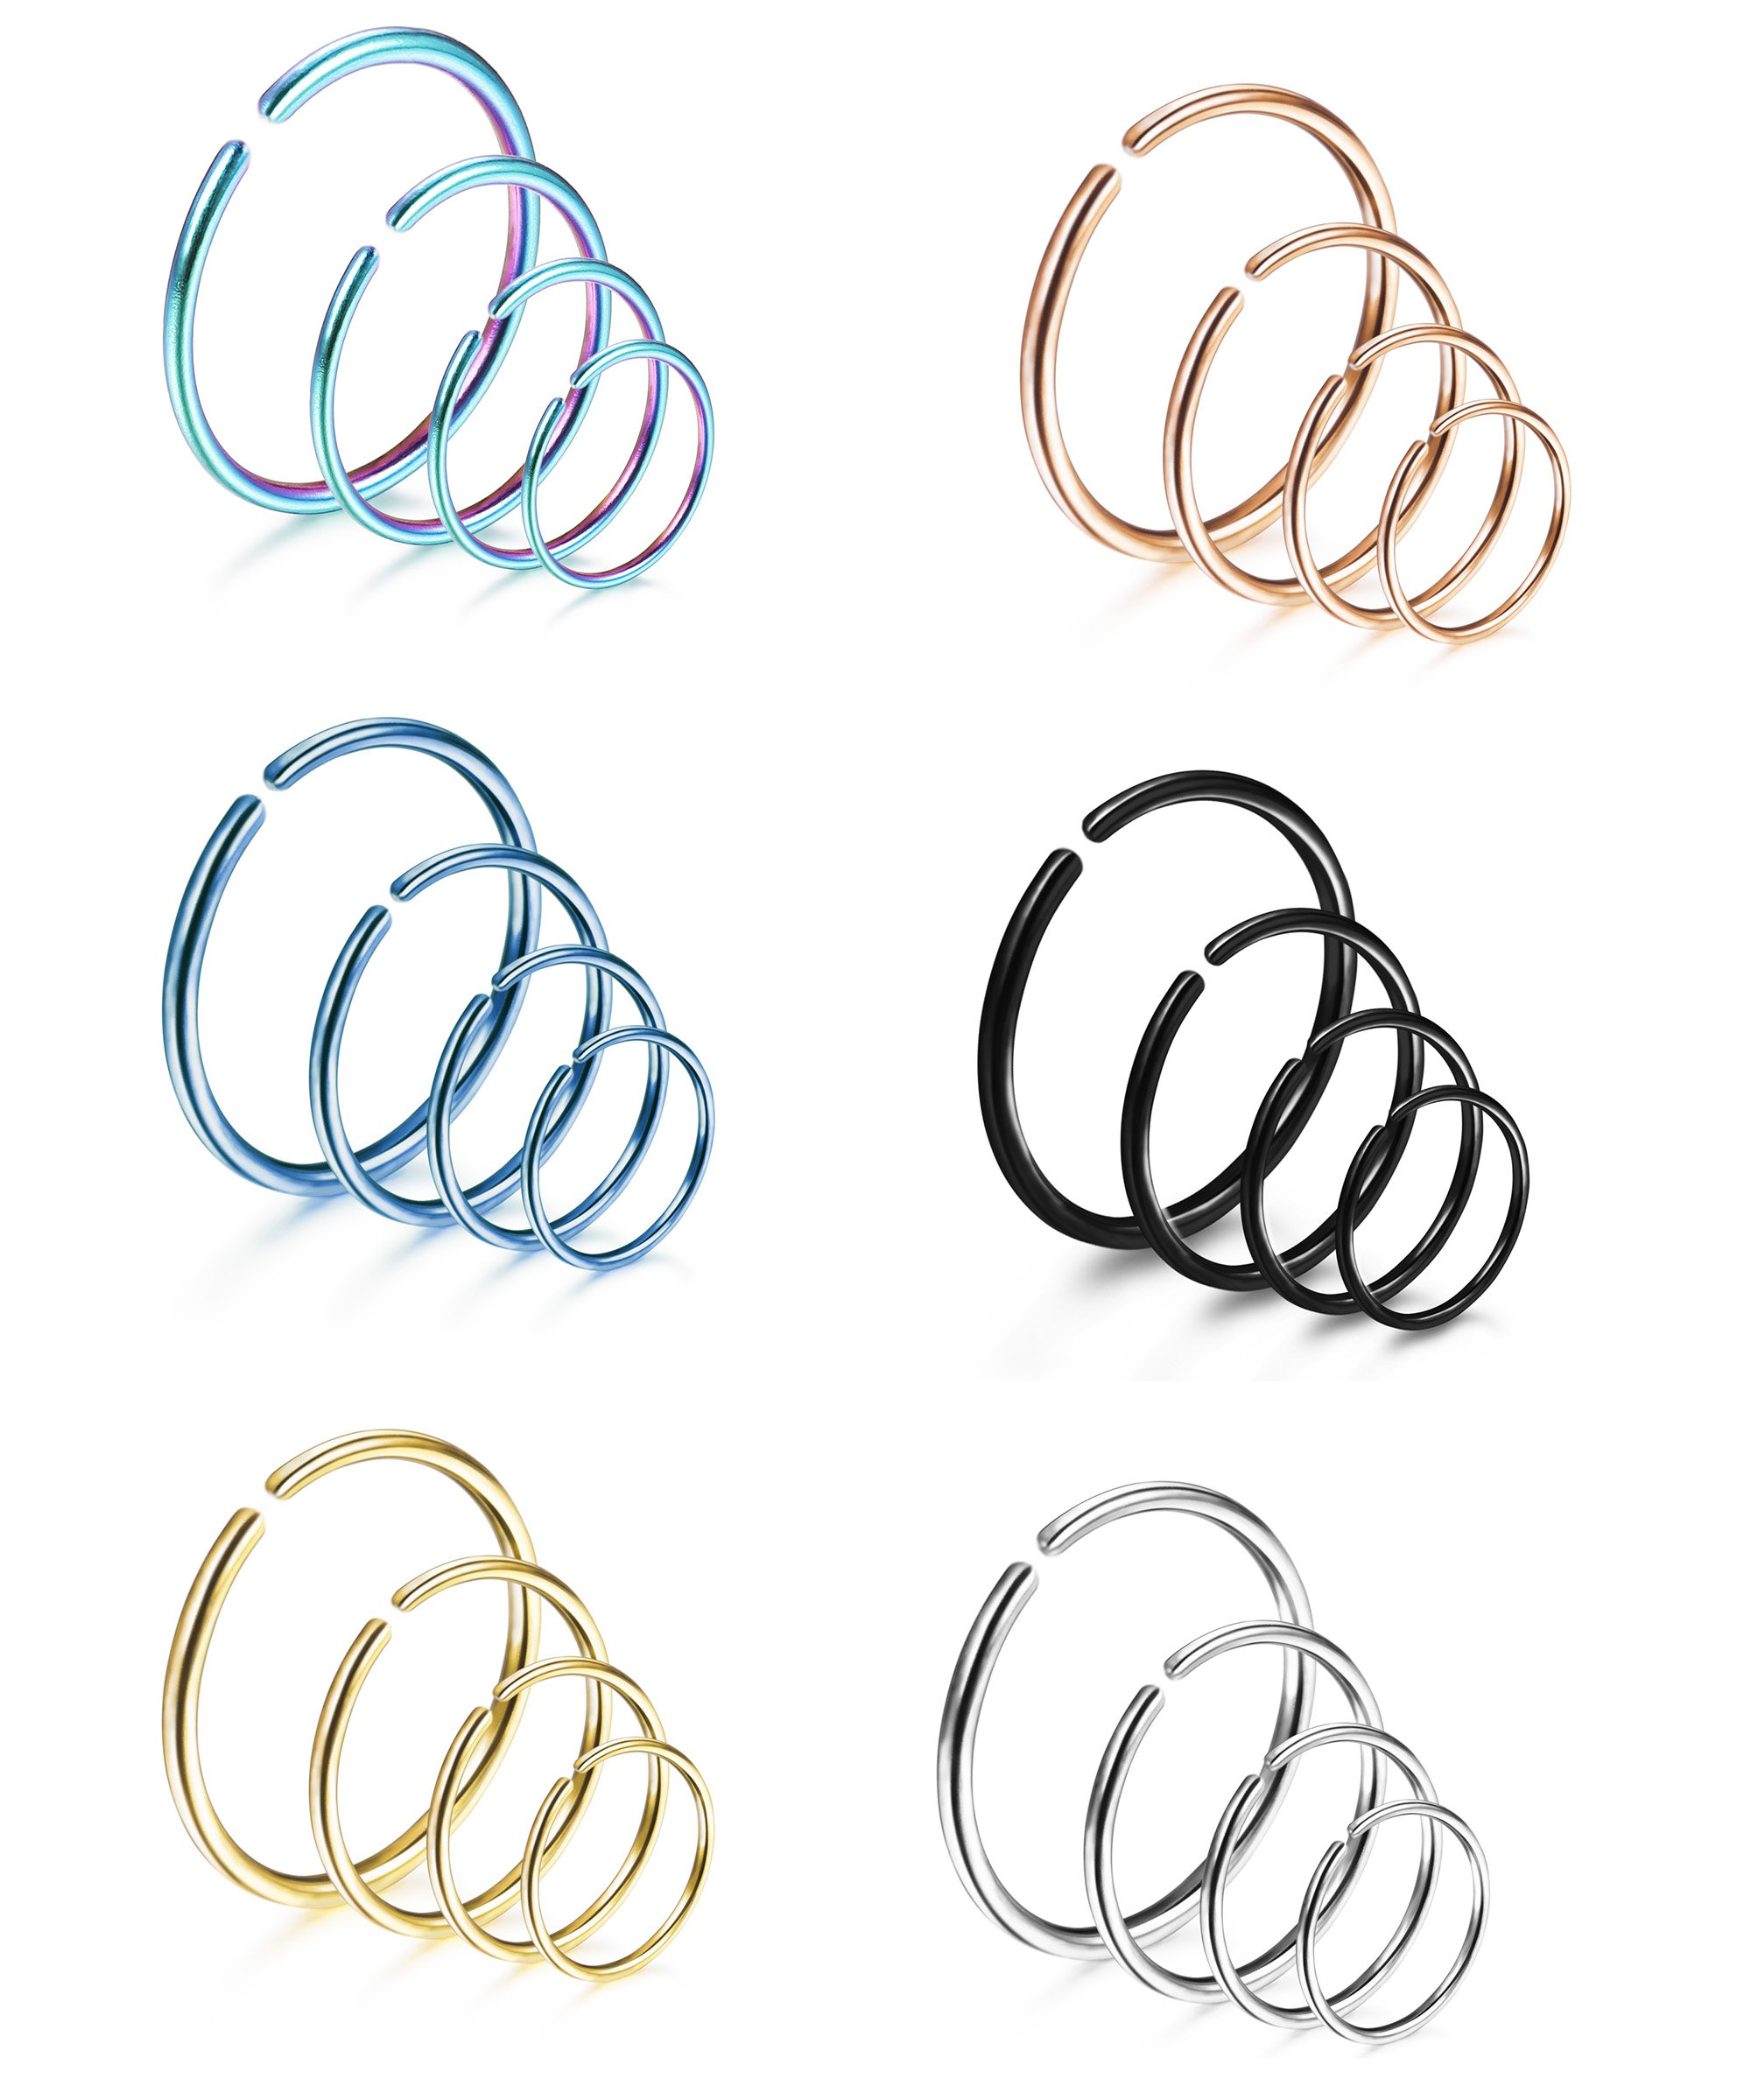 LOYALLOOK 24Pcs 316L Stainless Steel Nose Ring Hoop Cartilage Hoop Septum Piercing 6mm,8mm,10mm,12mm 18G by LOYALLOOK